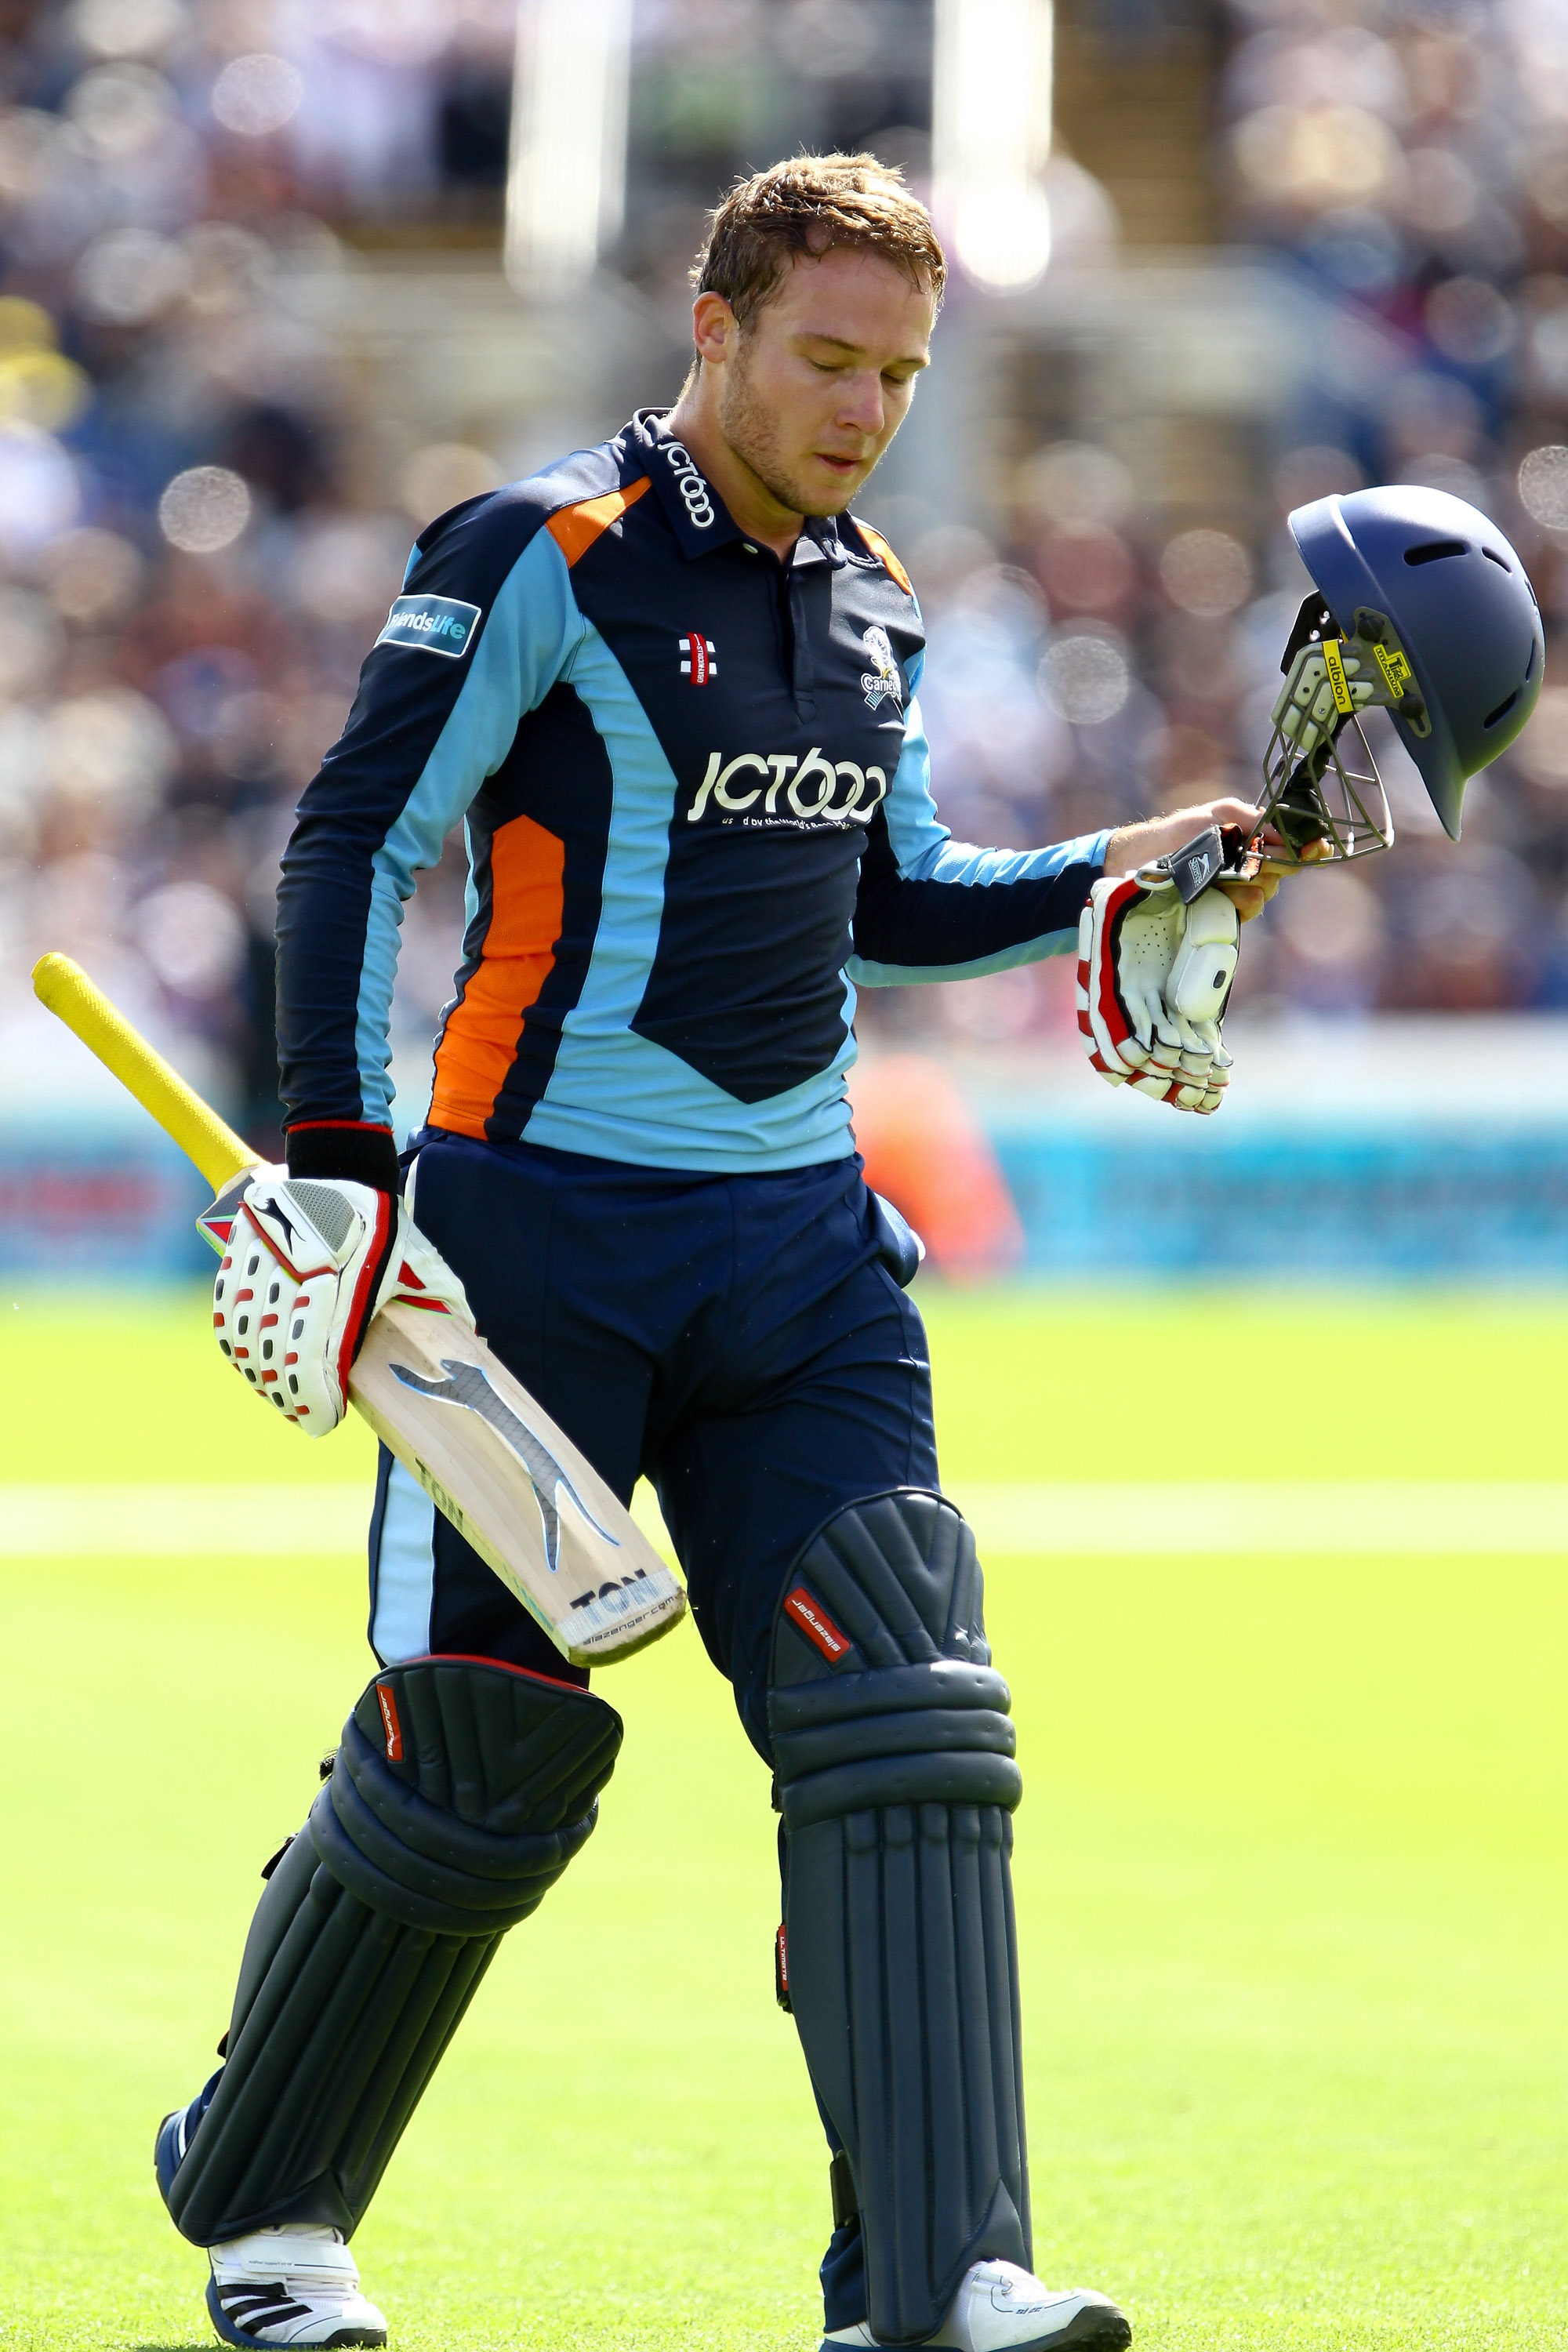 Yorkshire I Needed A Rest From Cricket Explains David Miller